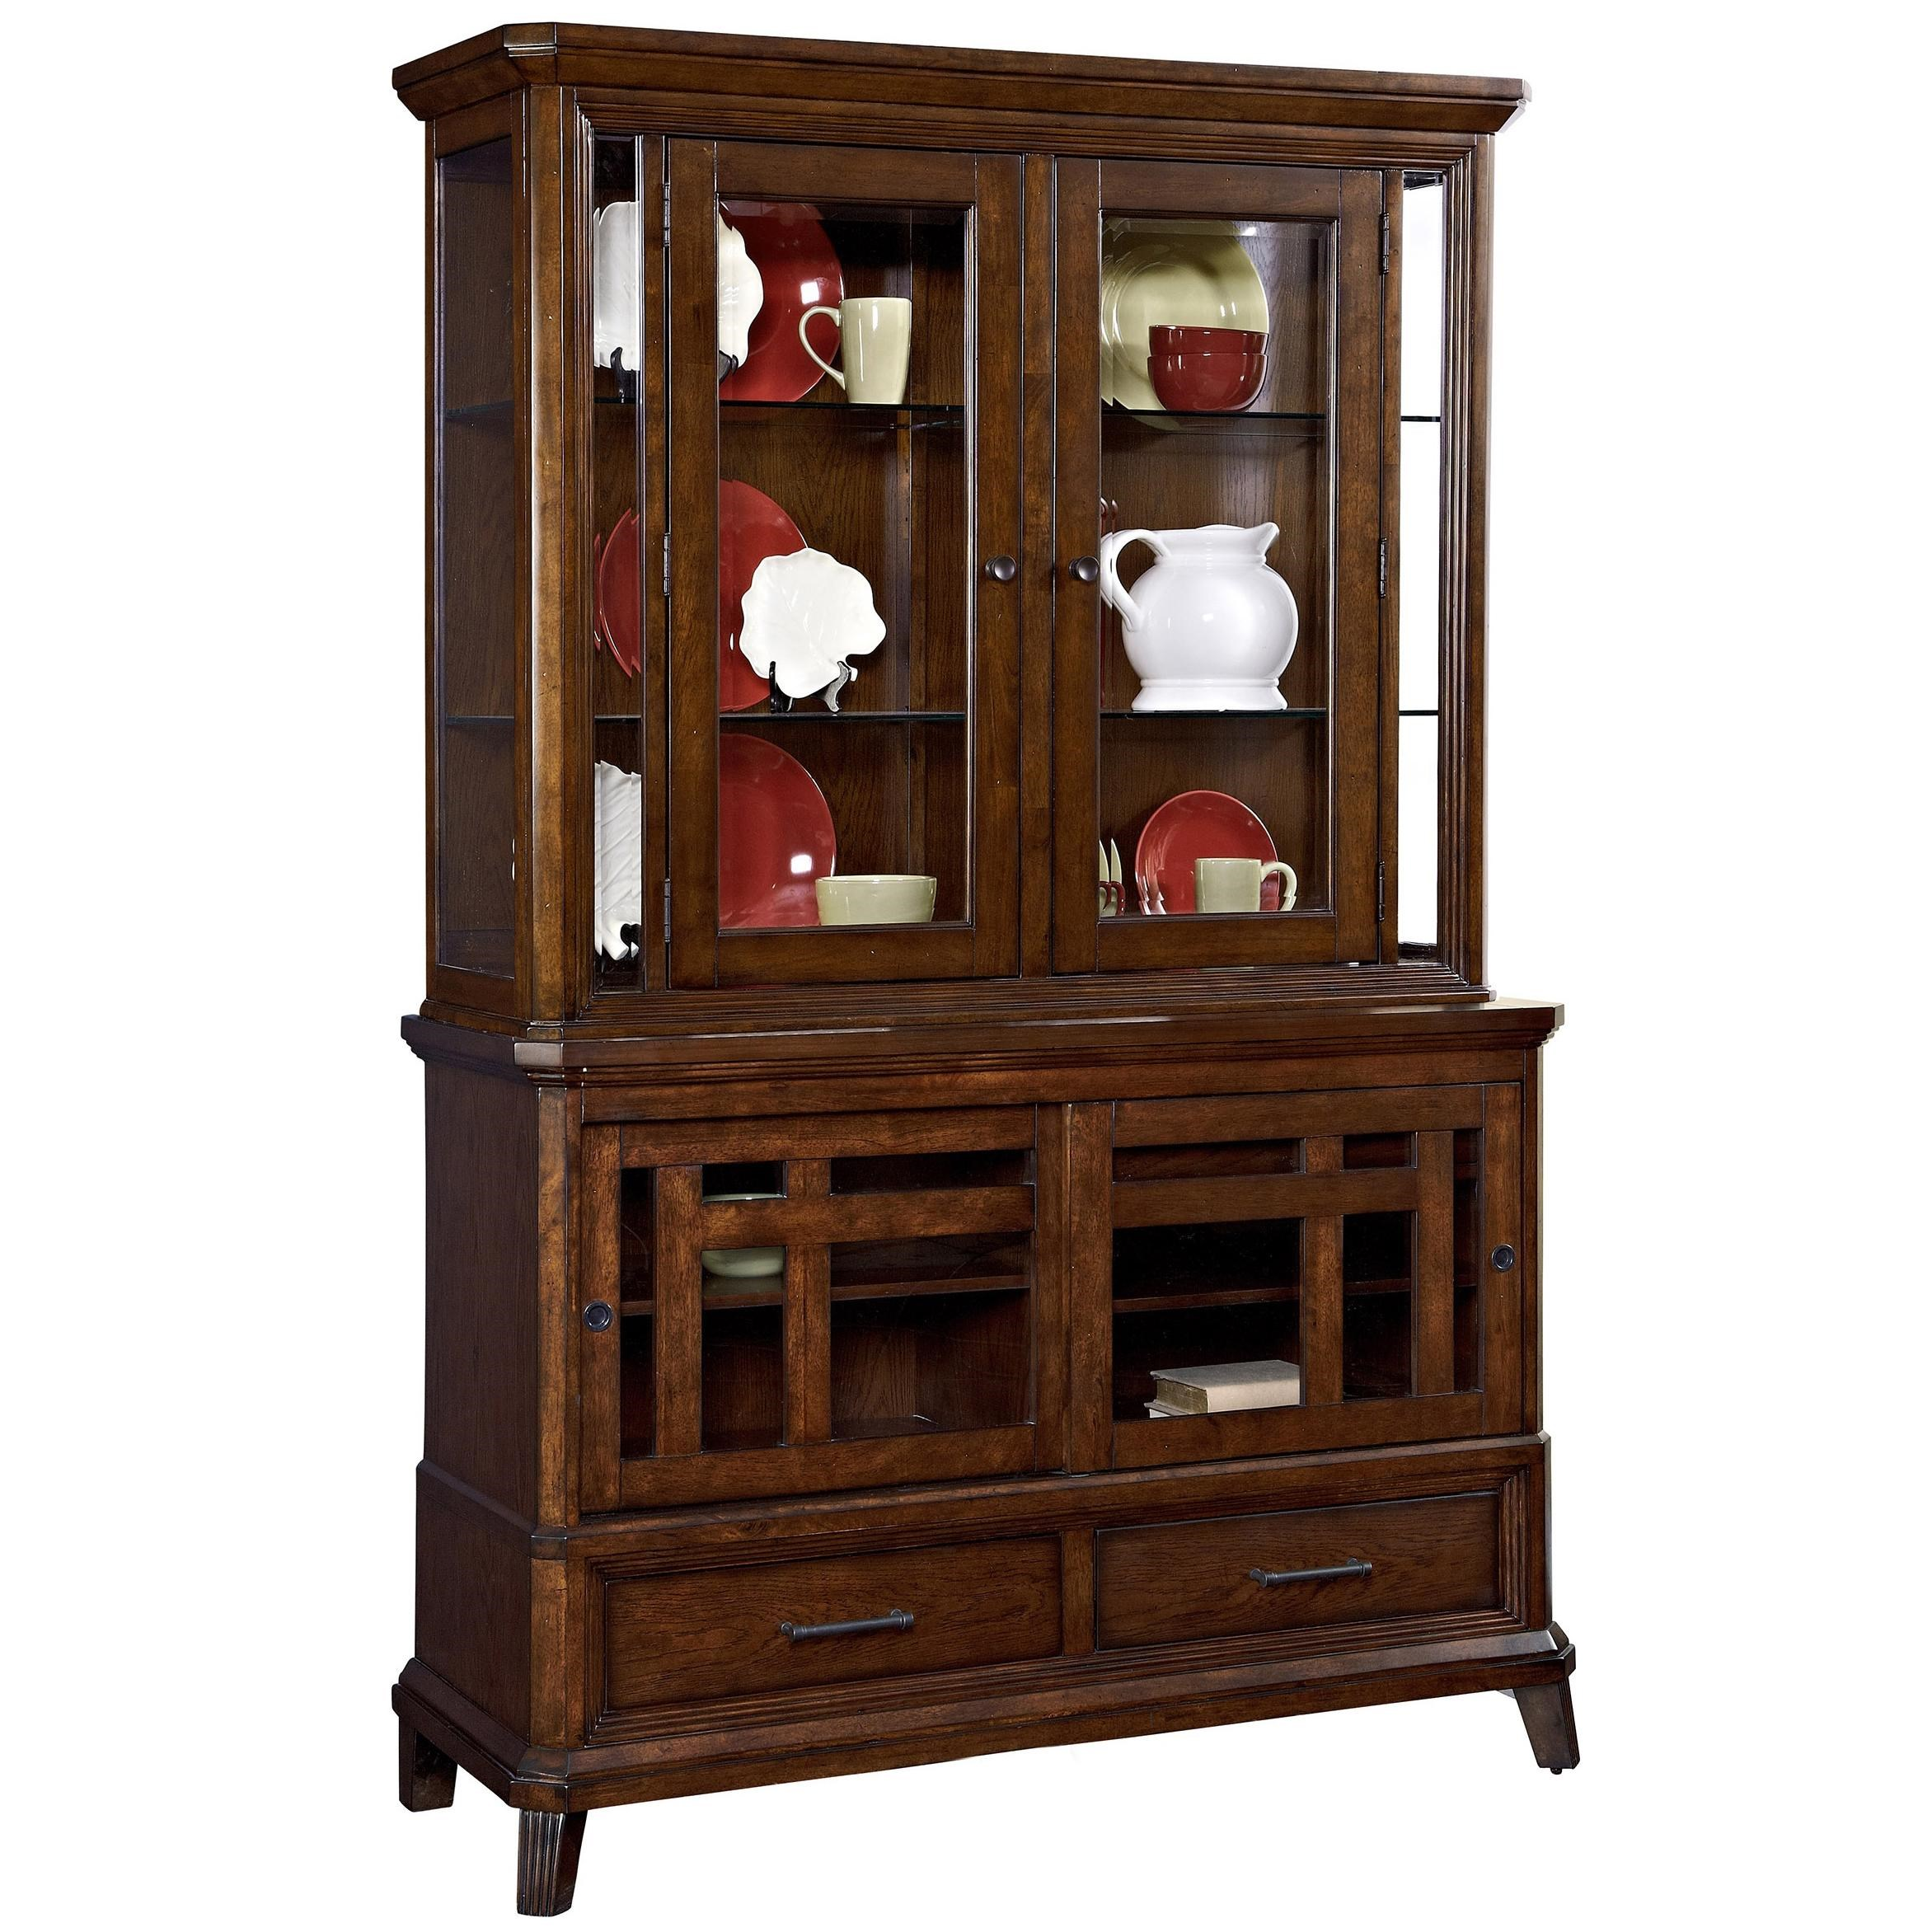 Marvelous Broyhill Furniture Estes Park China Cabinet With 4 Doors And Lighted Hutch